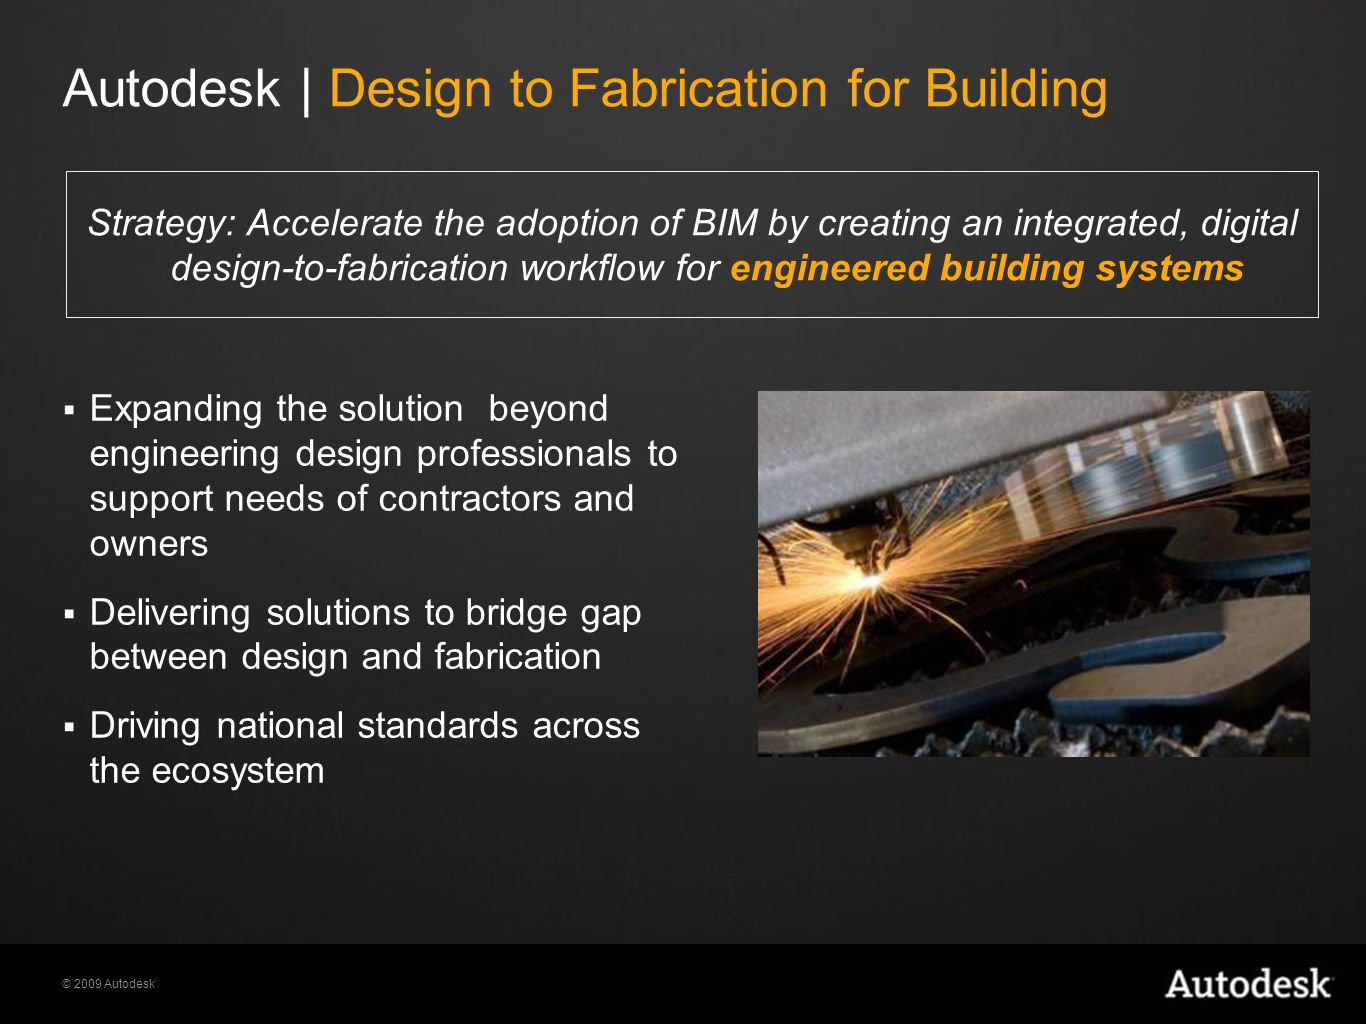 © 2009 Autodesk Strategy: Accelerate the adoption of BIM by creating an integrated, digital design-to-fabrication workflow for engineered building systems  Expanding the solution beyond engineering design professionals to support needs of contractors and owners  Delivering solutions to bridge gap between design and fabrication  Driving national standards across the ecosystem Autodesk | Design to Fabrication for Building